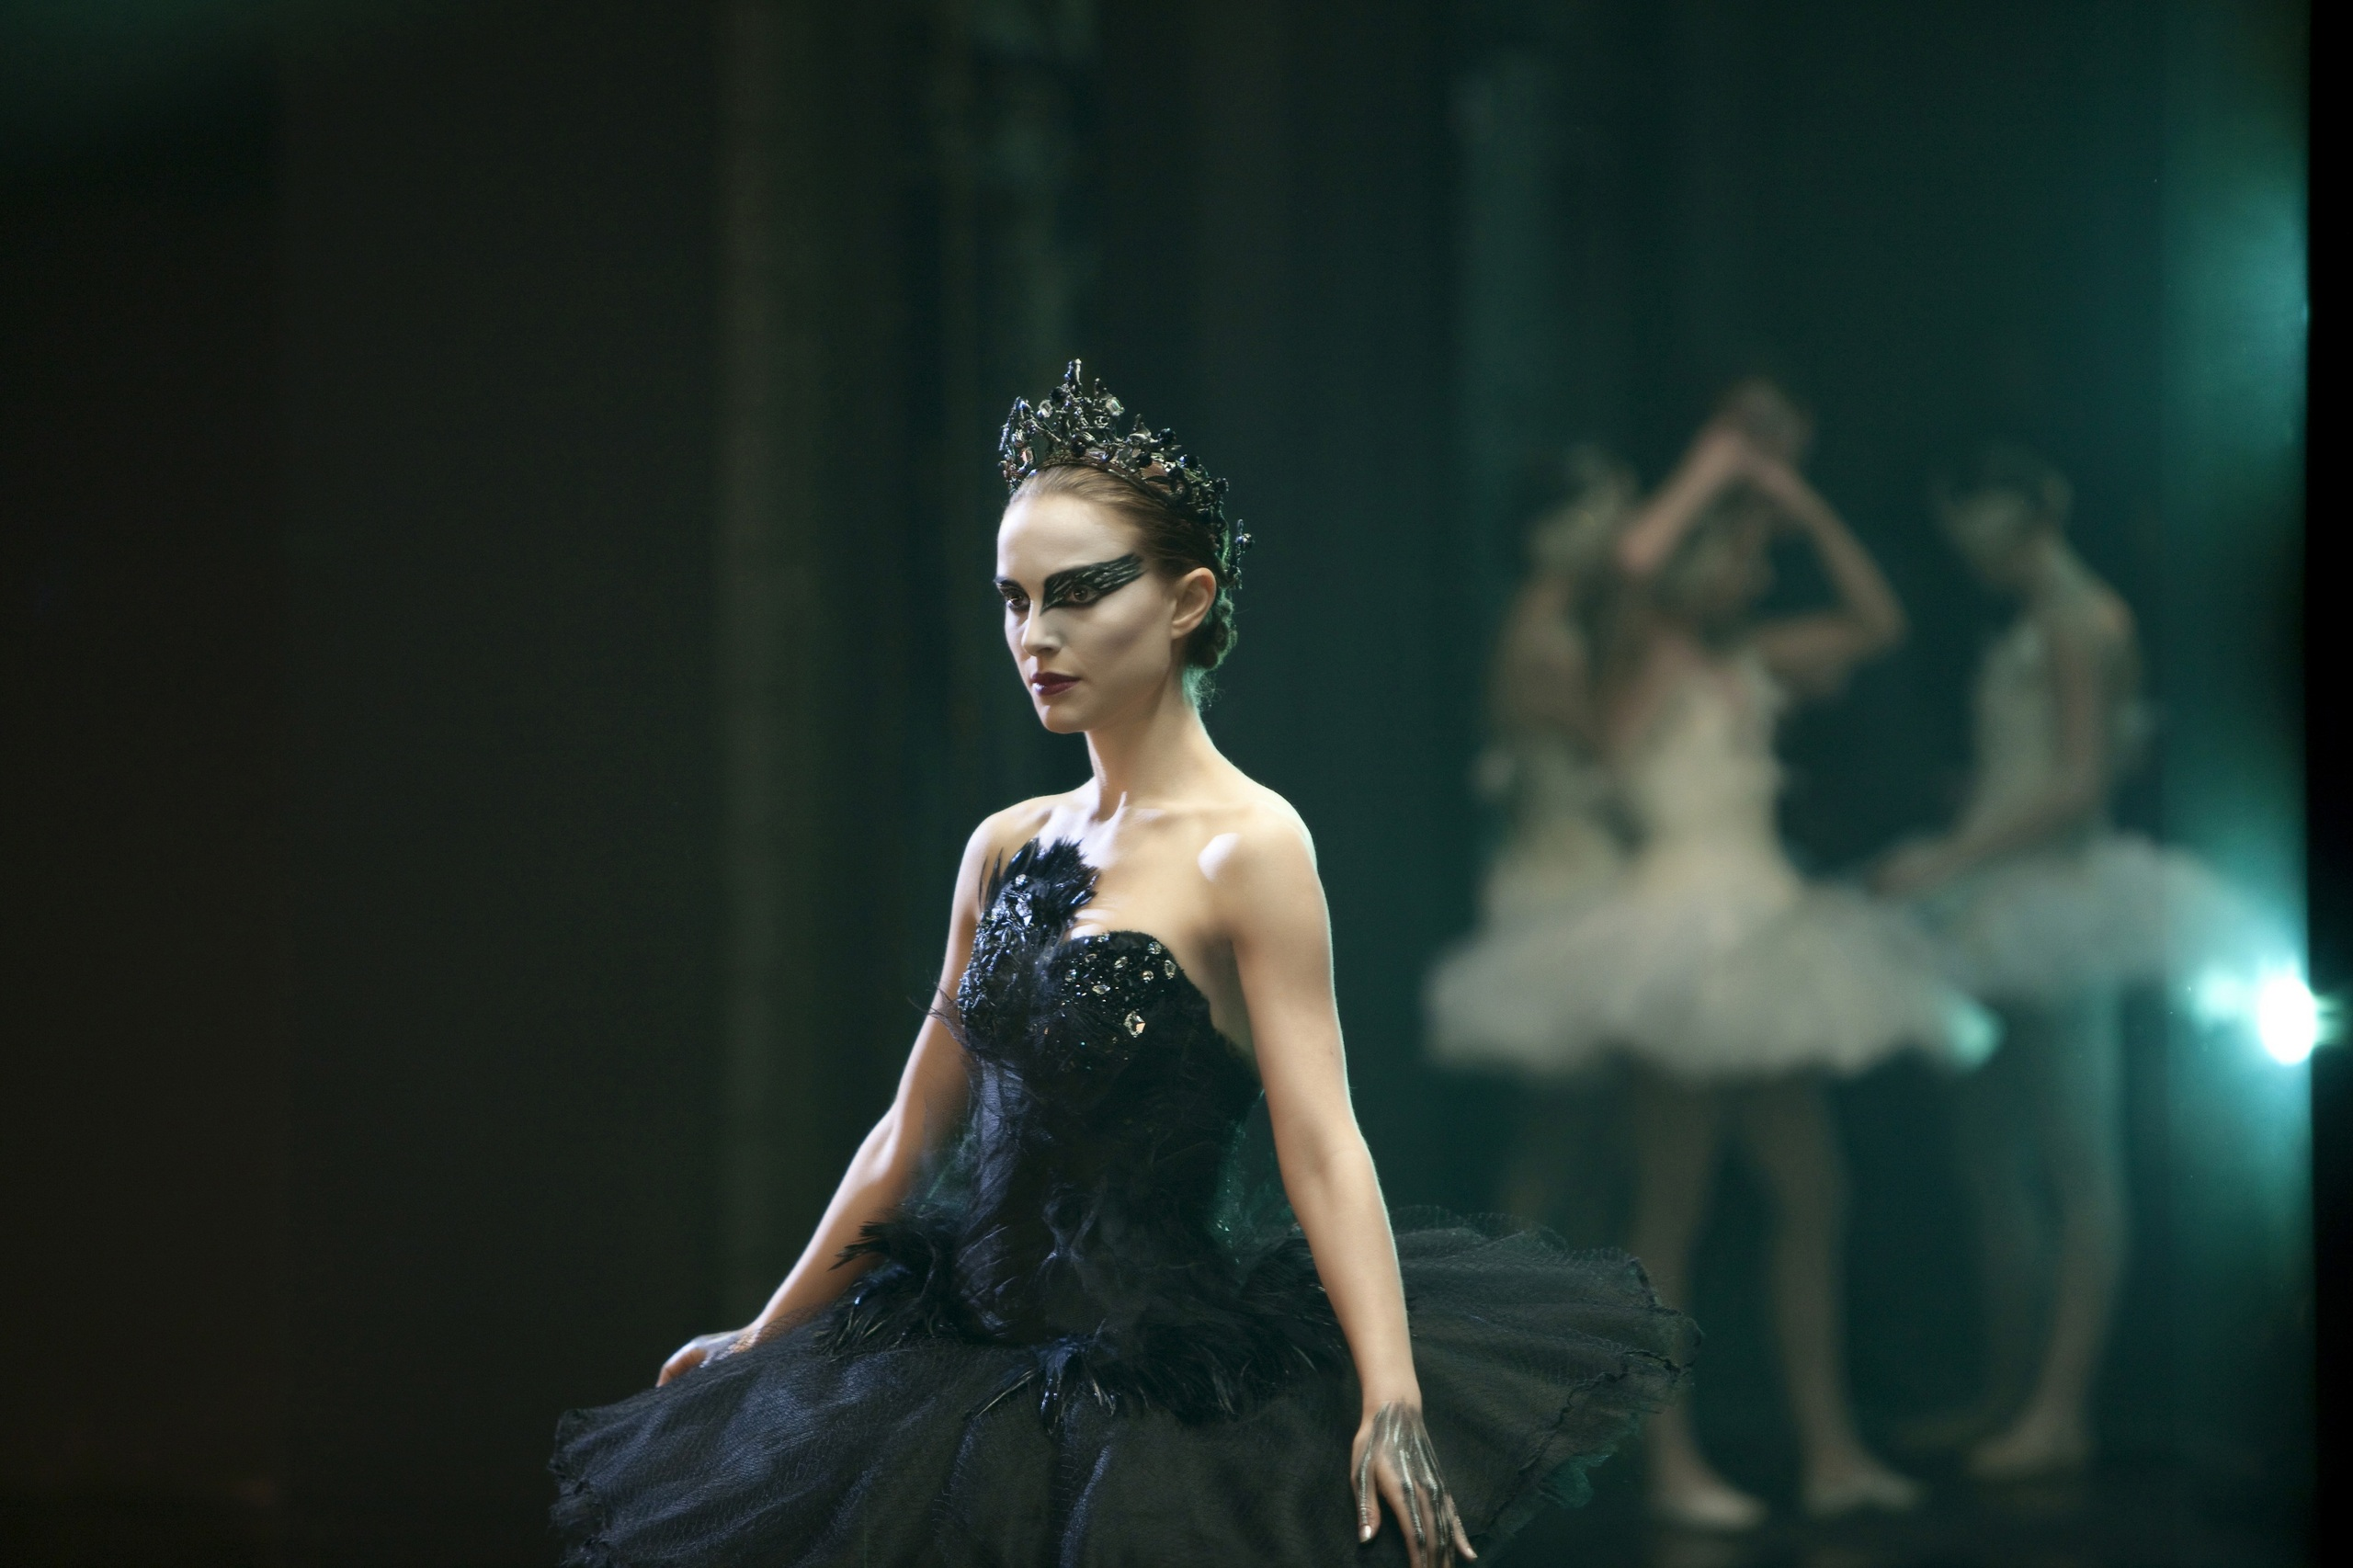 black swan movie online free no download